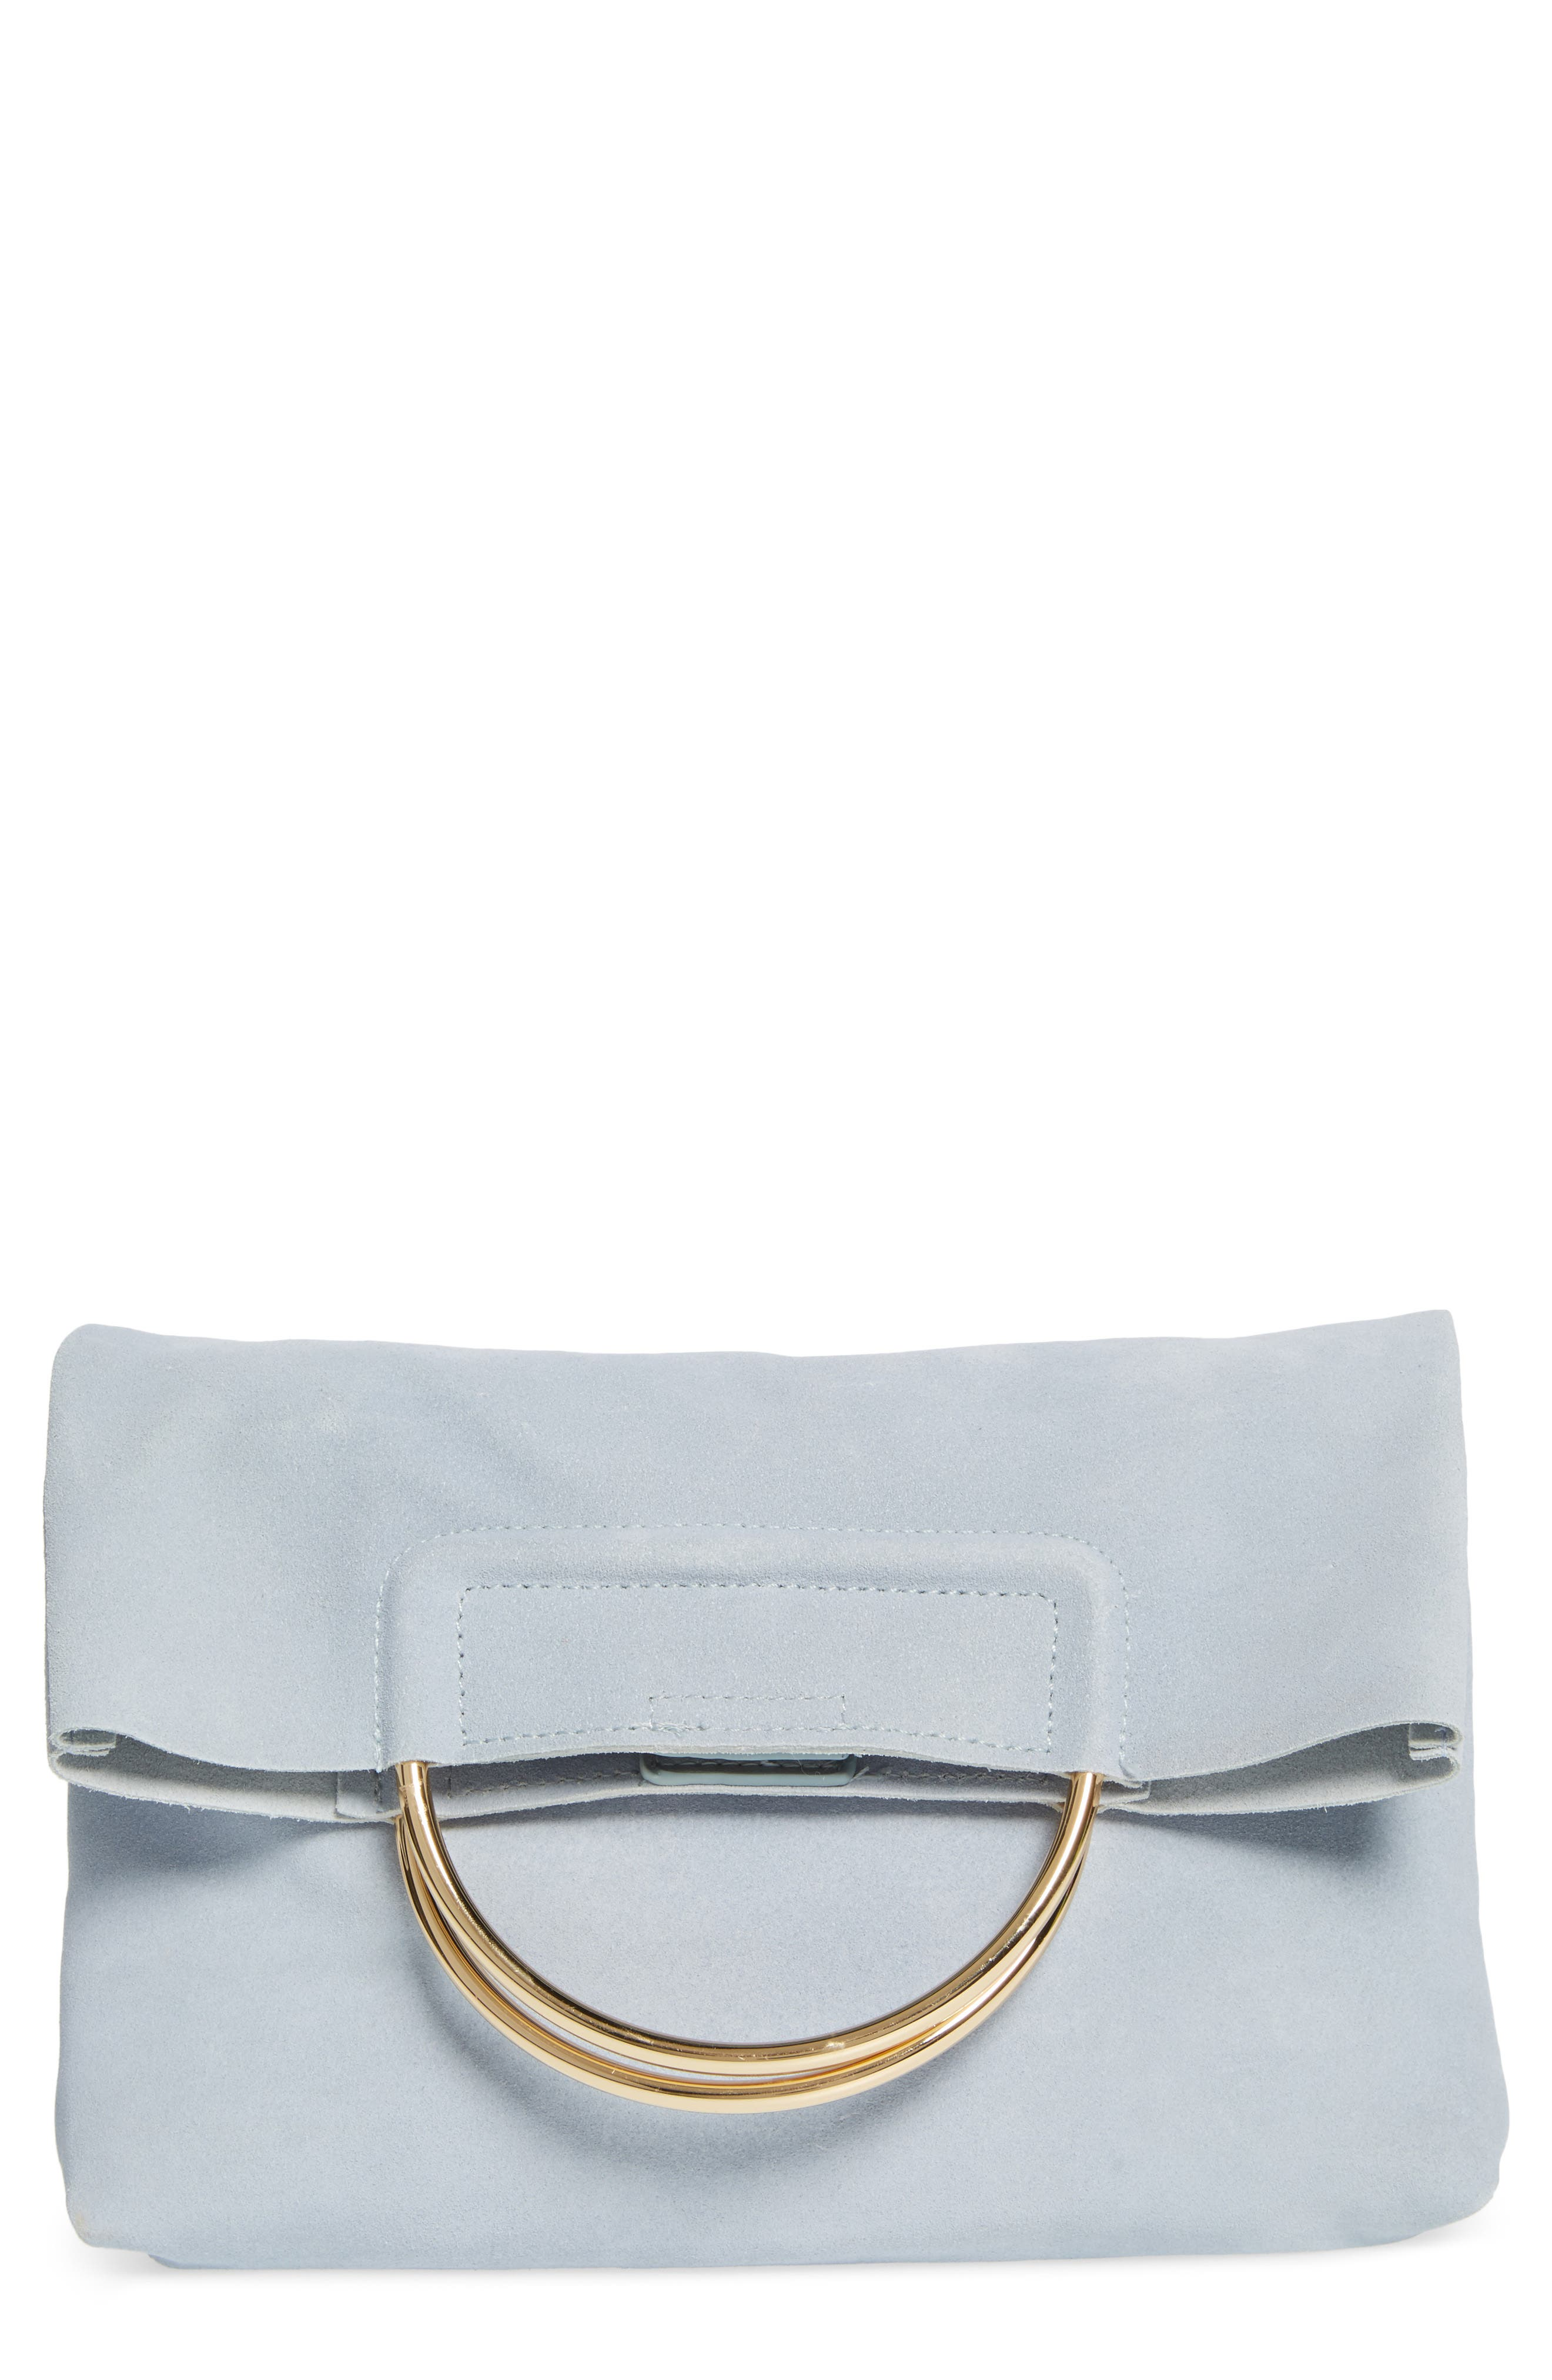 Suede Foldover Clutch,                         Main,                         color, Cloudy Blue